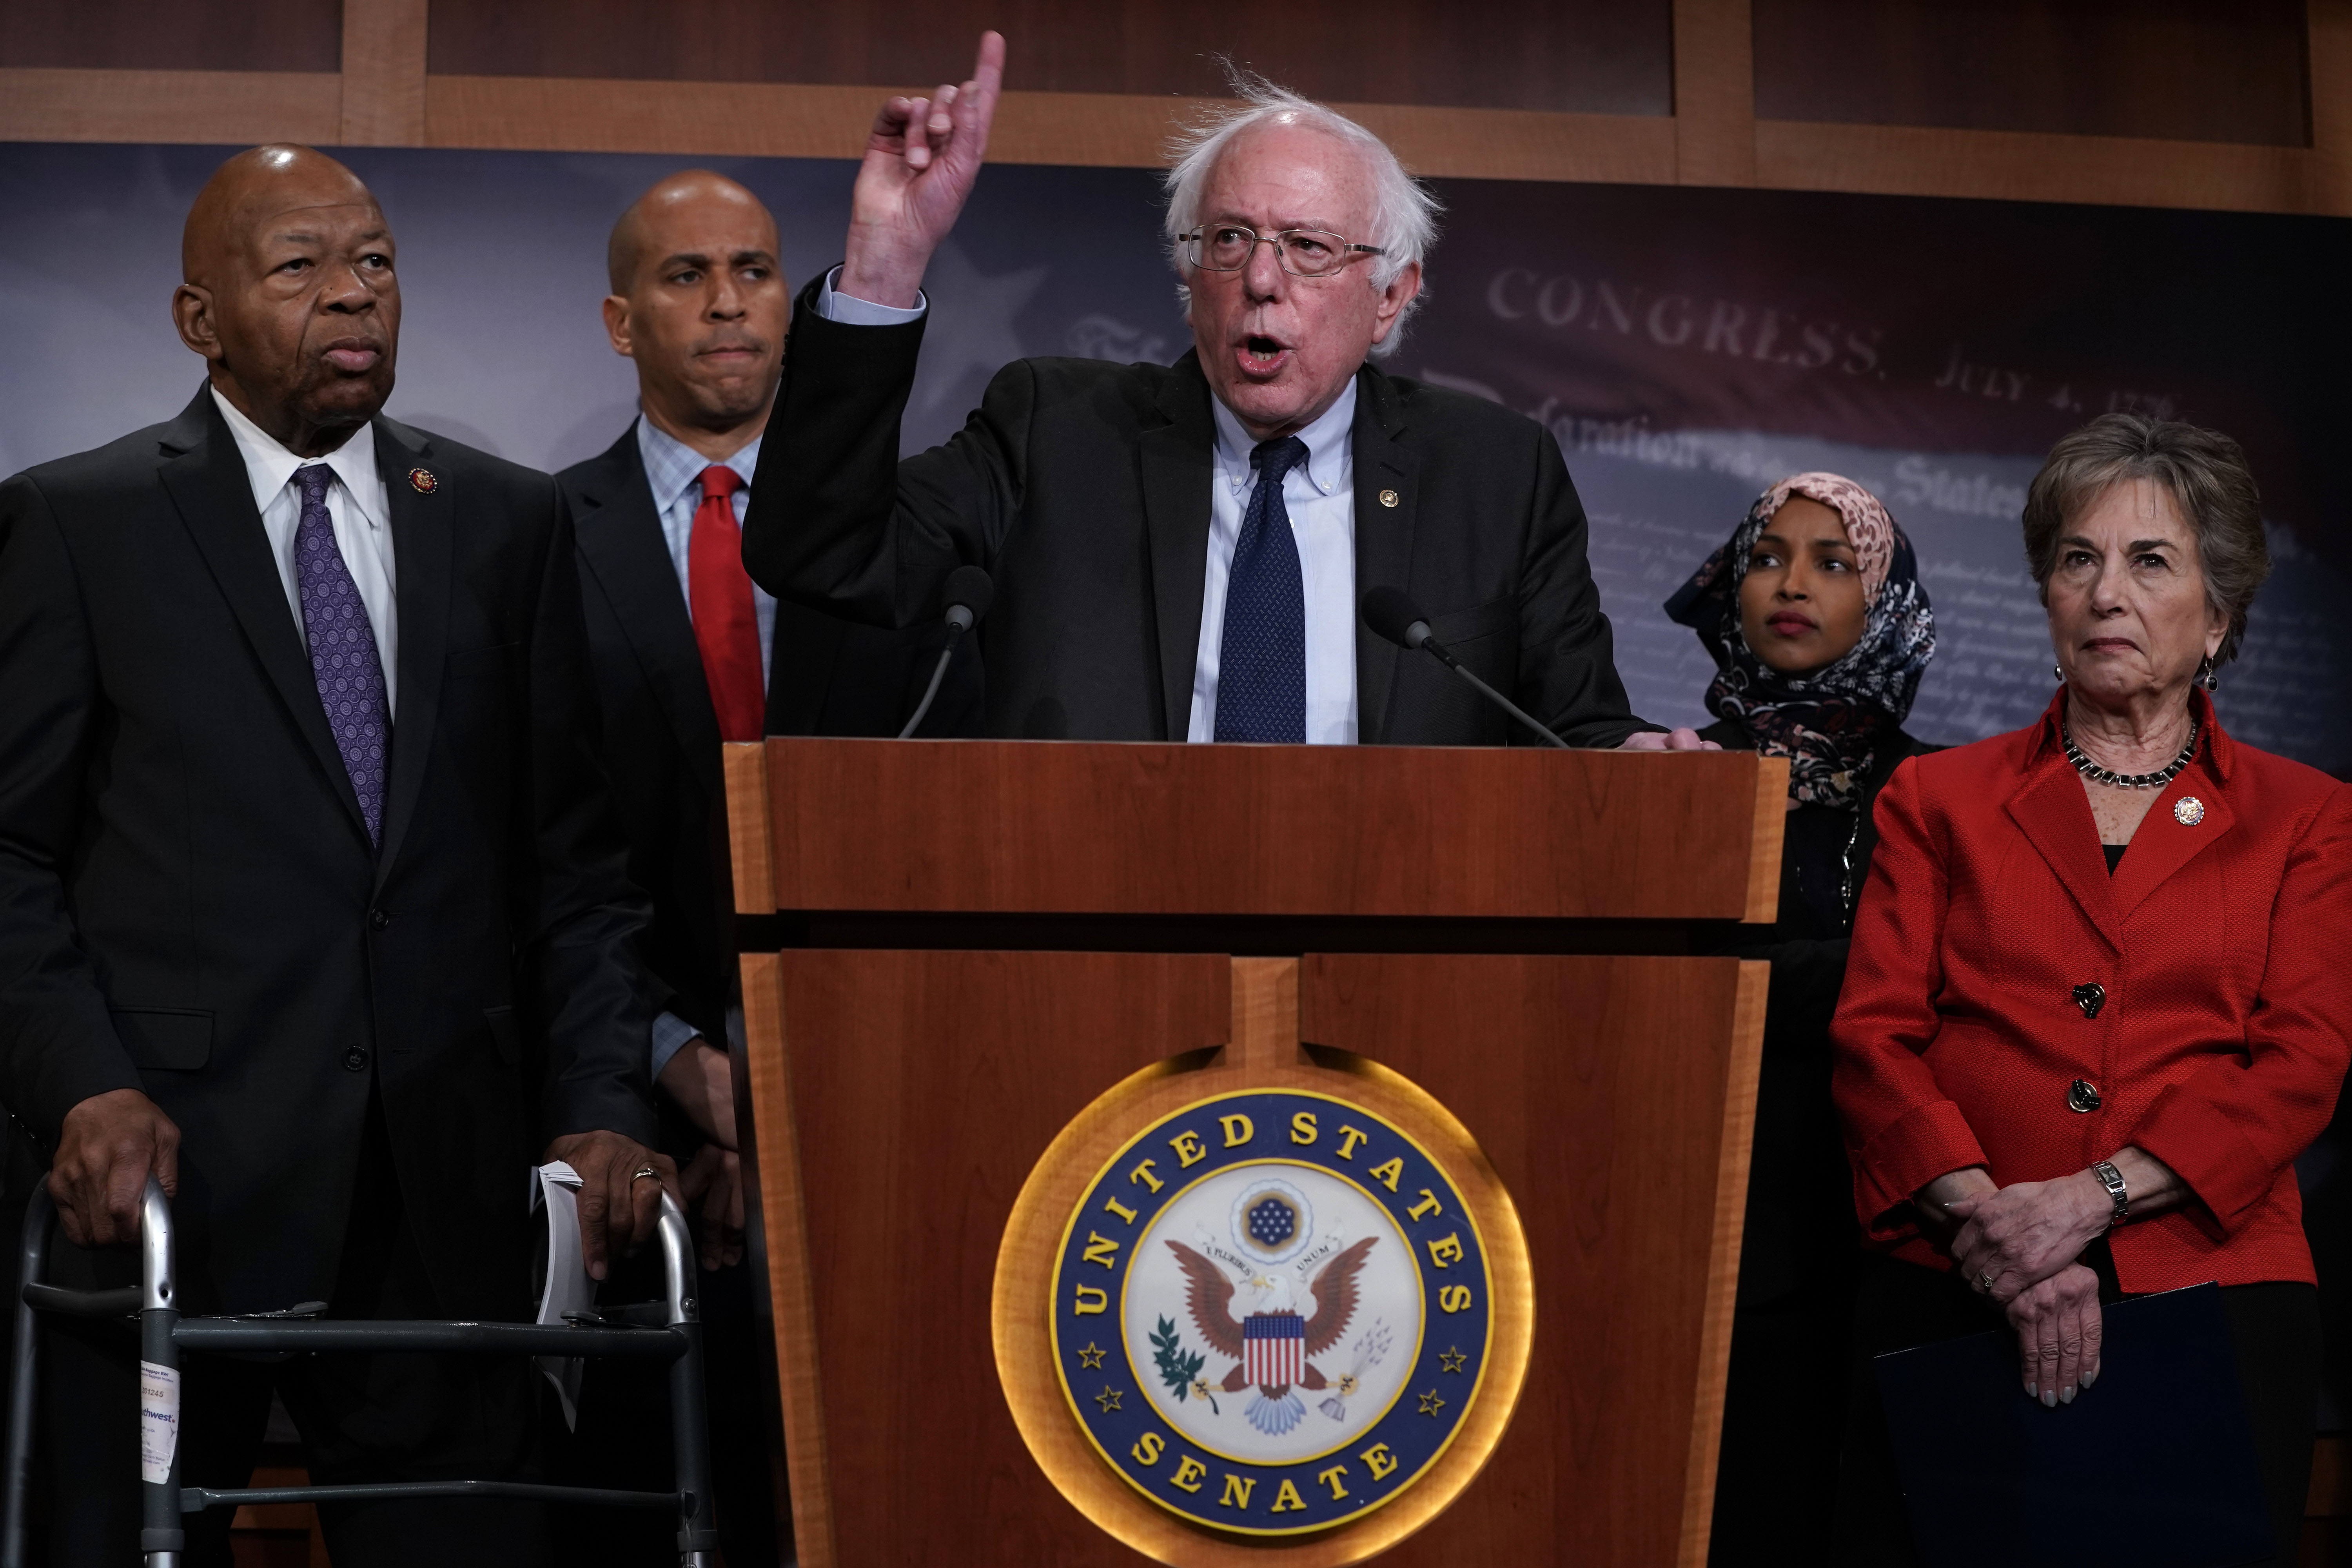 U.S. Sen. Bernie Sanders (3rd L) speaks as (L-R) Rep. Elijah Cummings Sen. Cory Booker, Rep. Ilhan Omar, and Rep. Jan Schakowsky listen during a news conference on prescription drugs January 10, 2019 at the Capitol in Washington, DC. (Photo by Alex Wong/Getty Images)